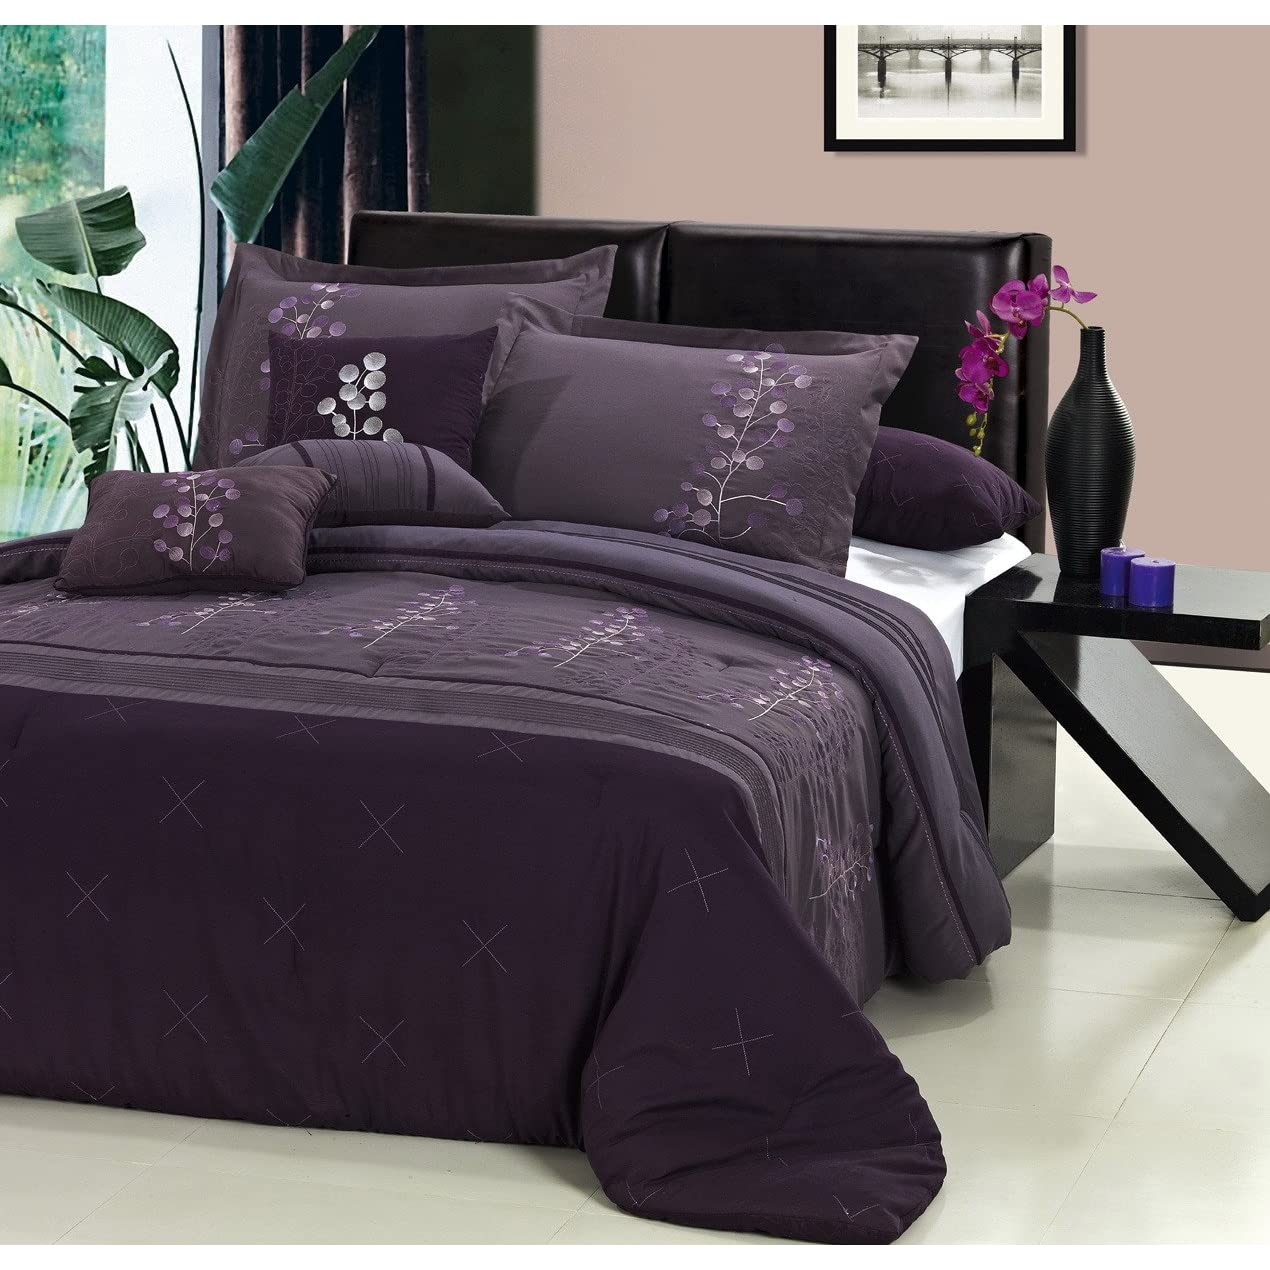 Remarkable Purple Bedroom Comforter Sets 1270 x 1270 · 262 kB · jpeg